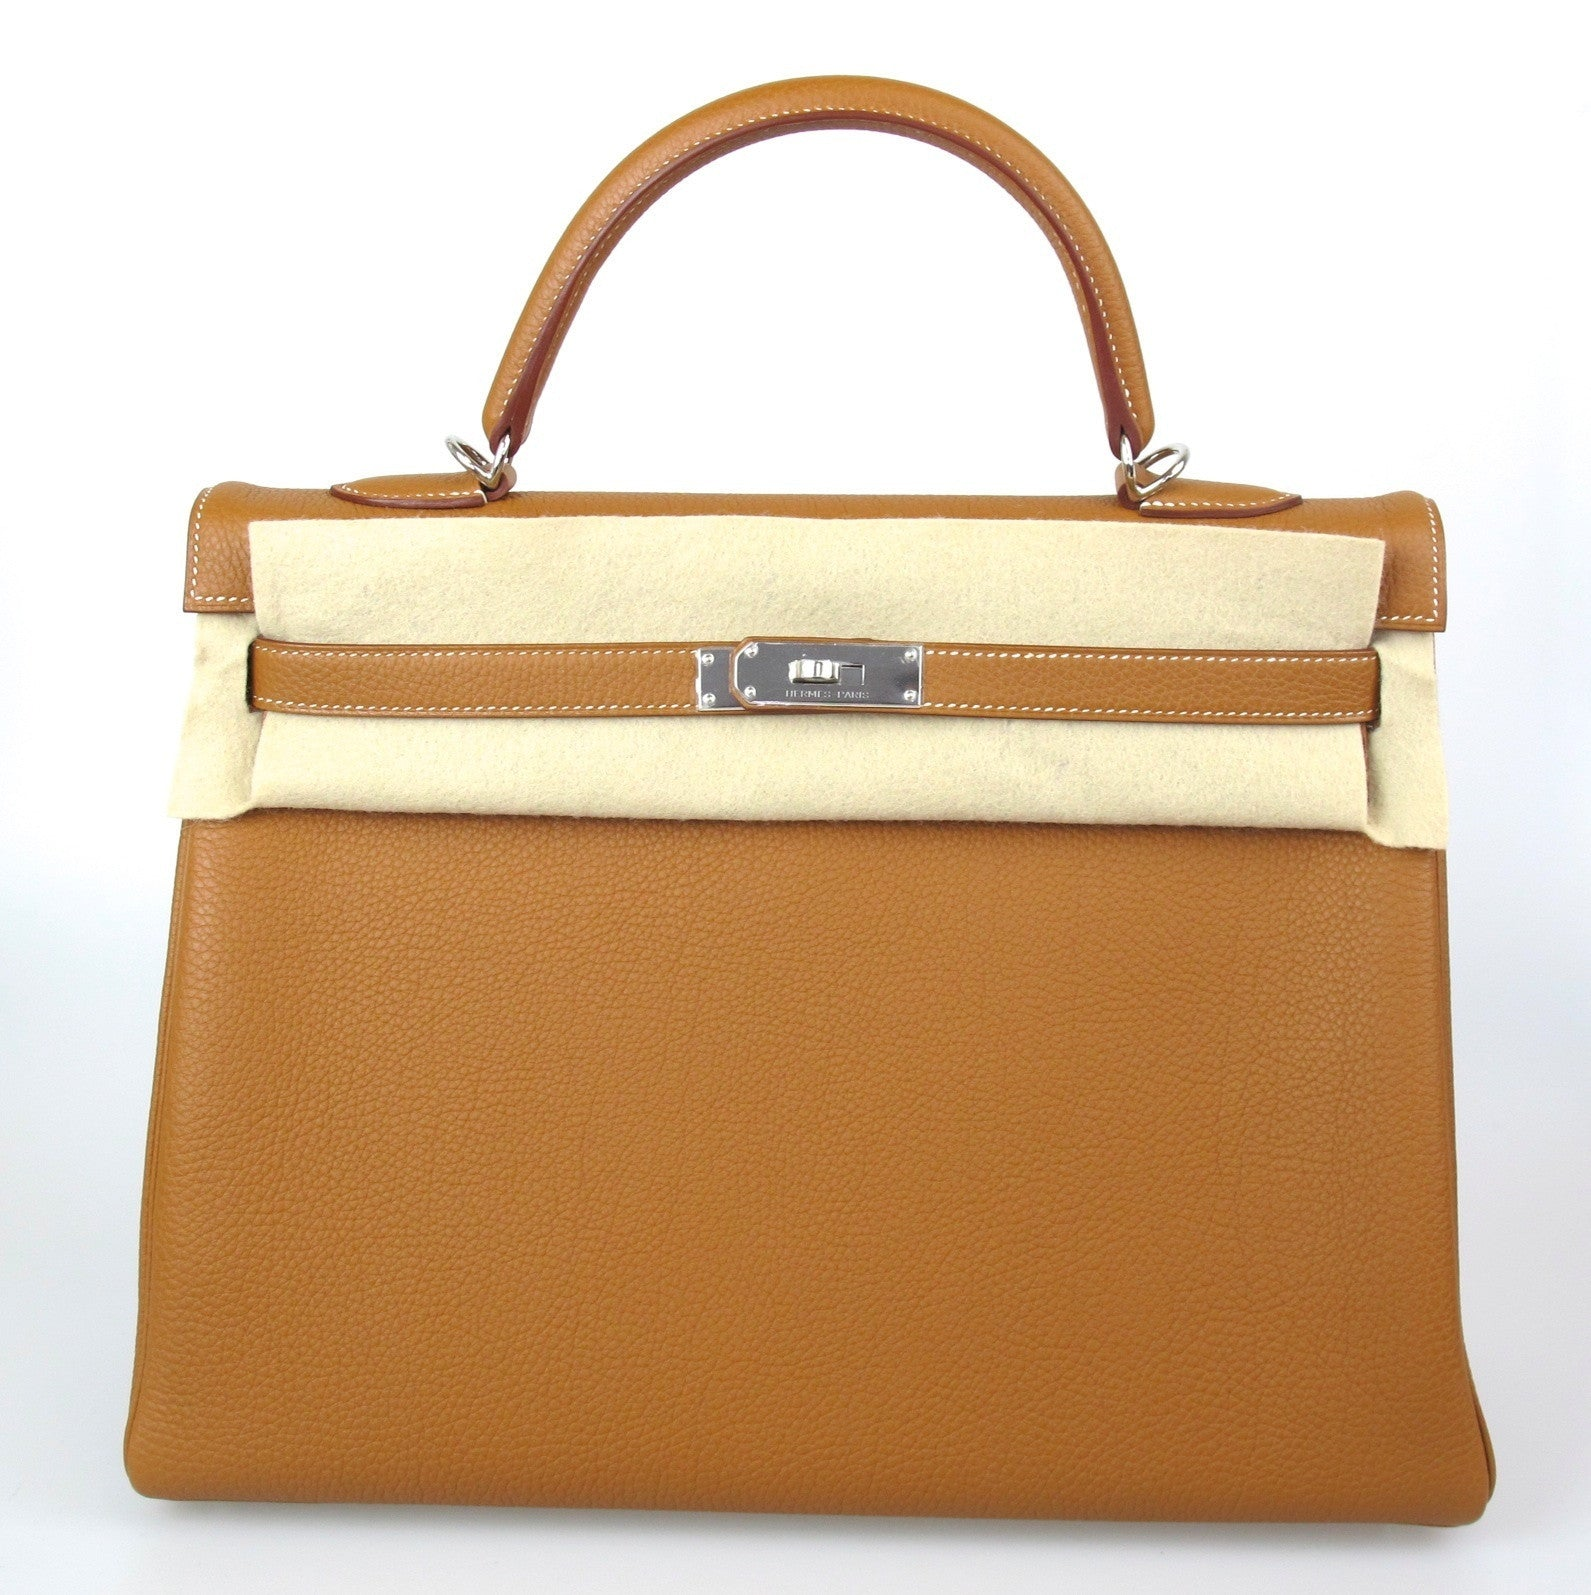 hermes kelly bag 35 cm new